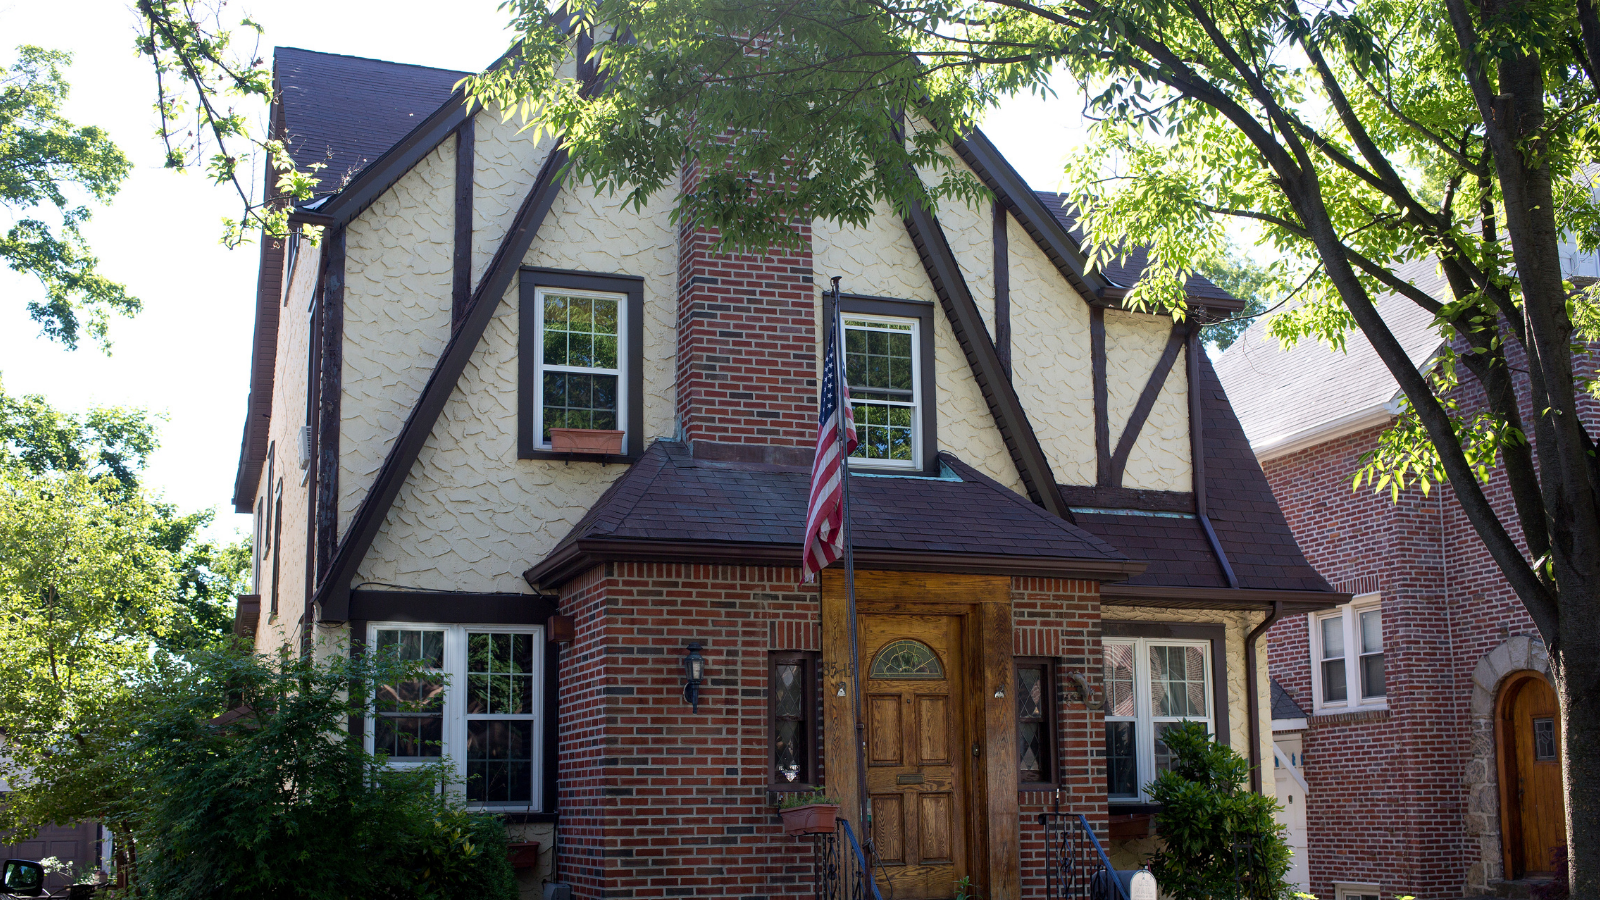 , The Owner of Trump's Childhood Home Wants $3 Million to Turn it Into a 'House of Worship', Saubio Making Wealth